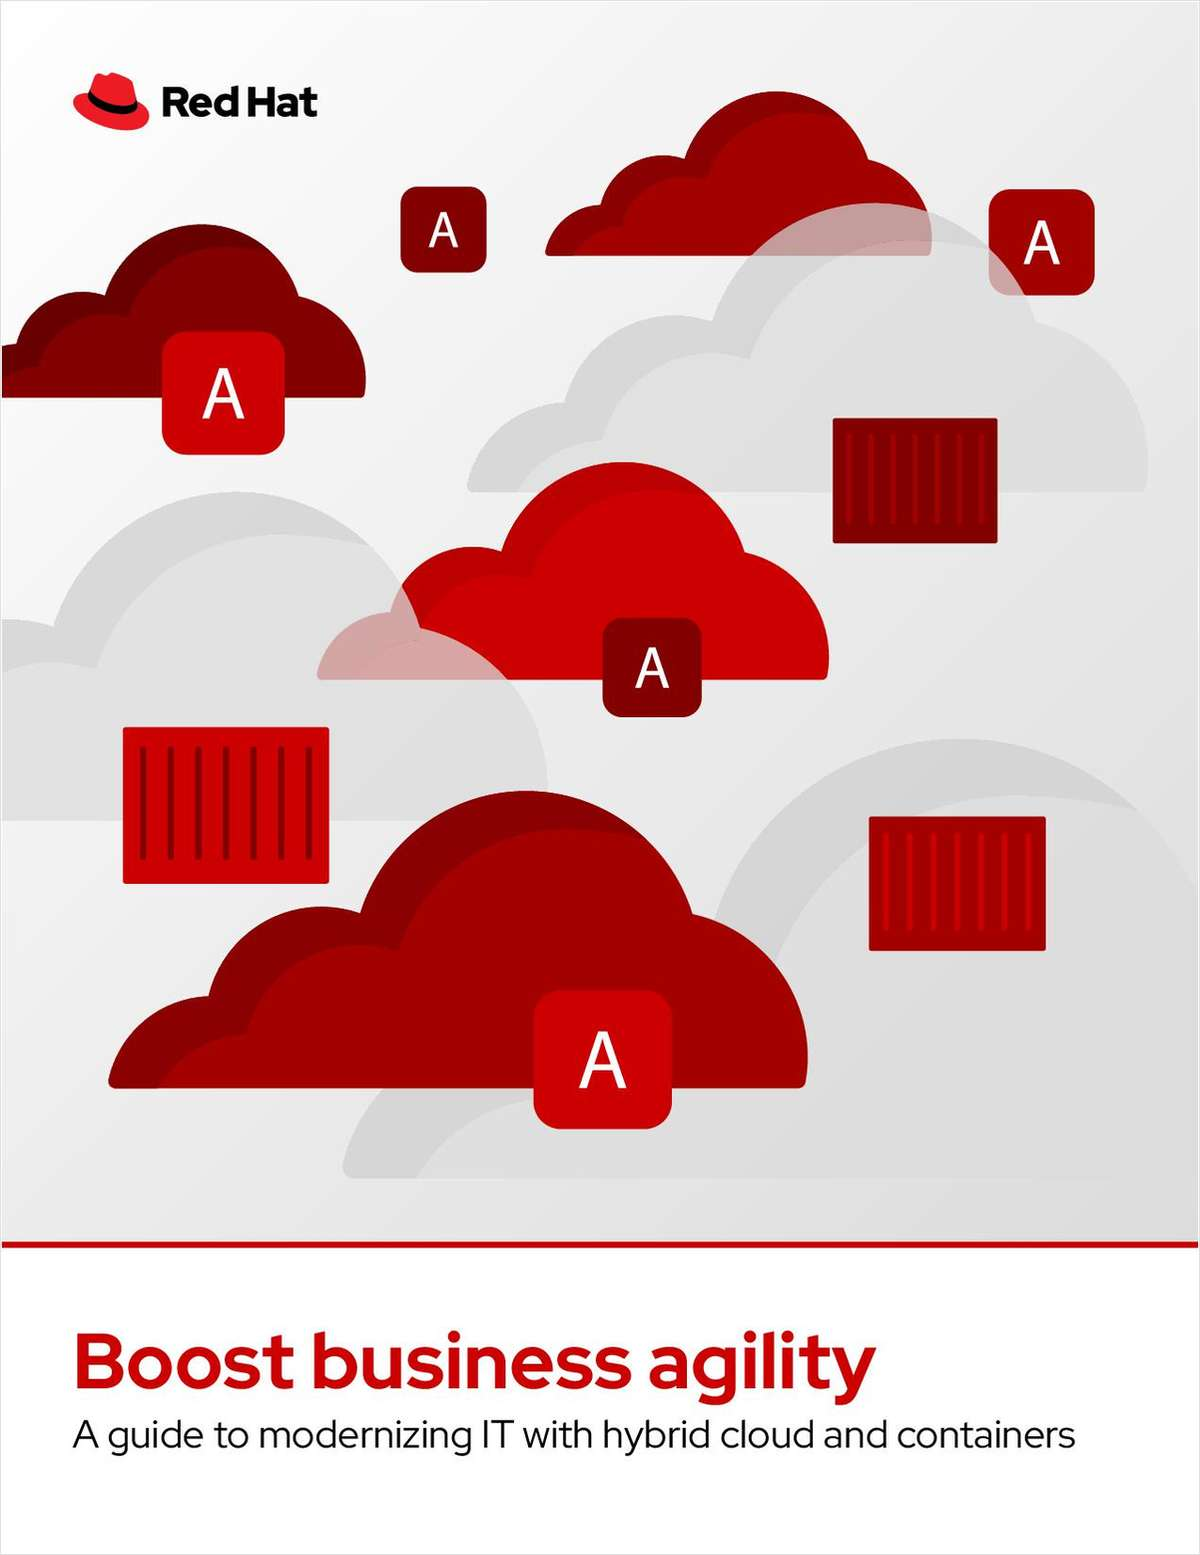 Boost agility with hybrid cloud and containers